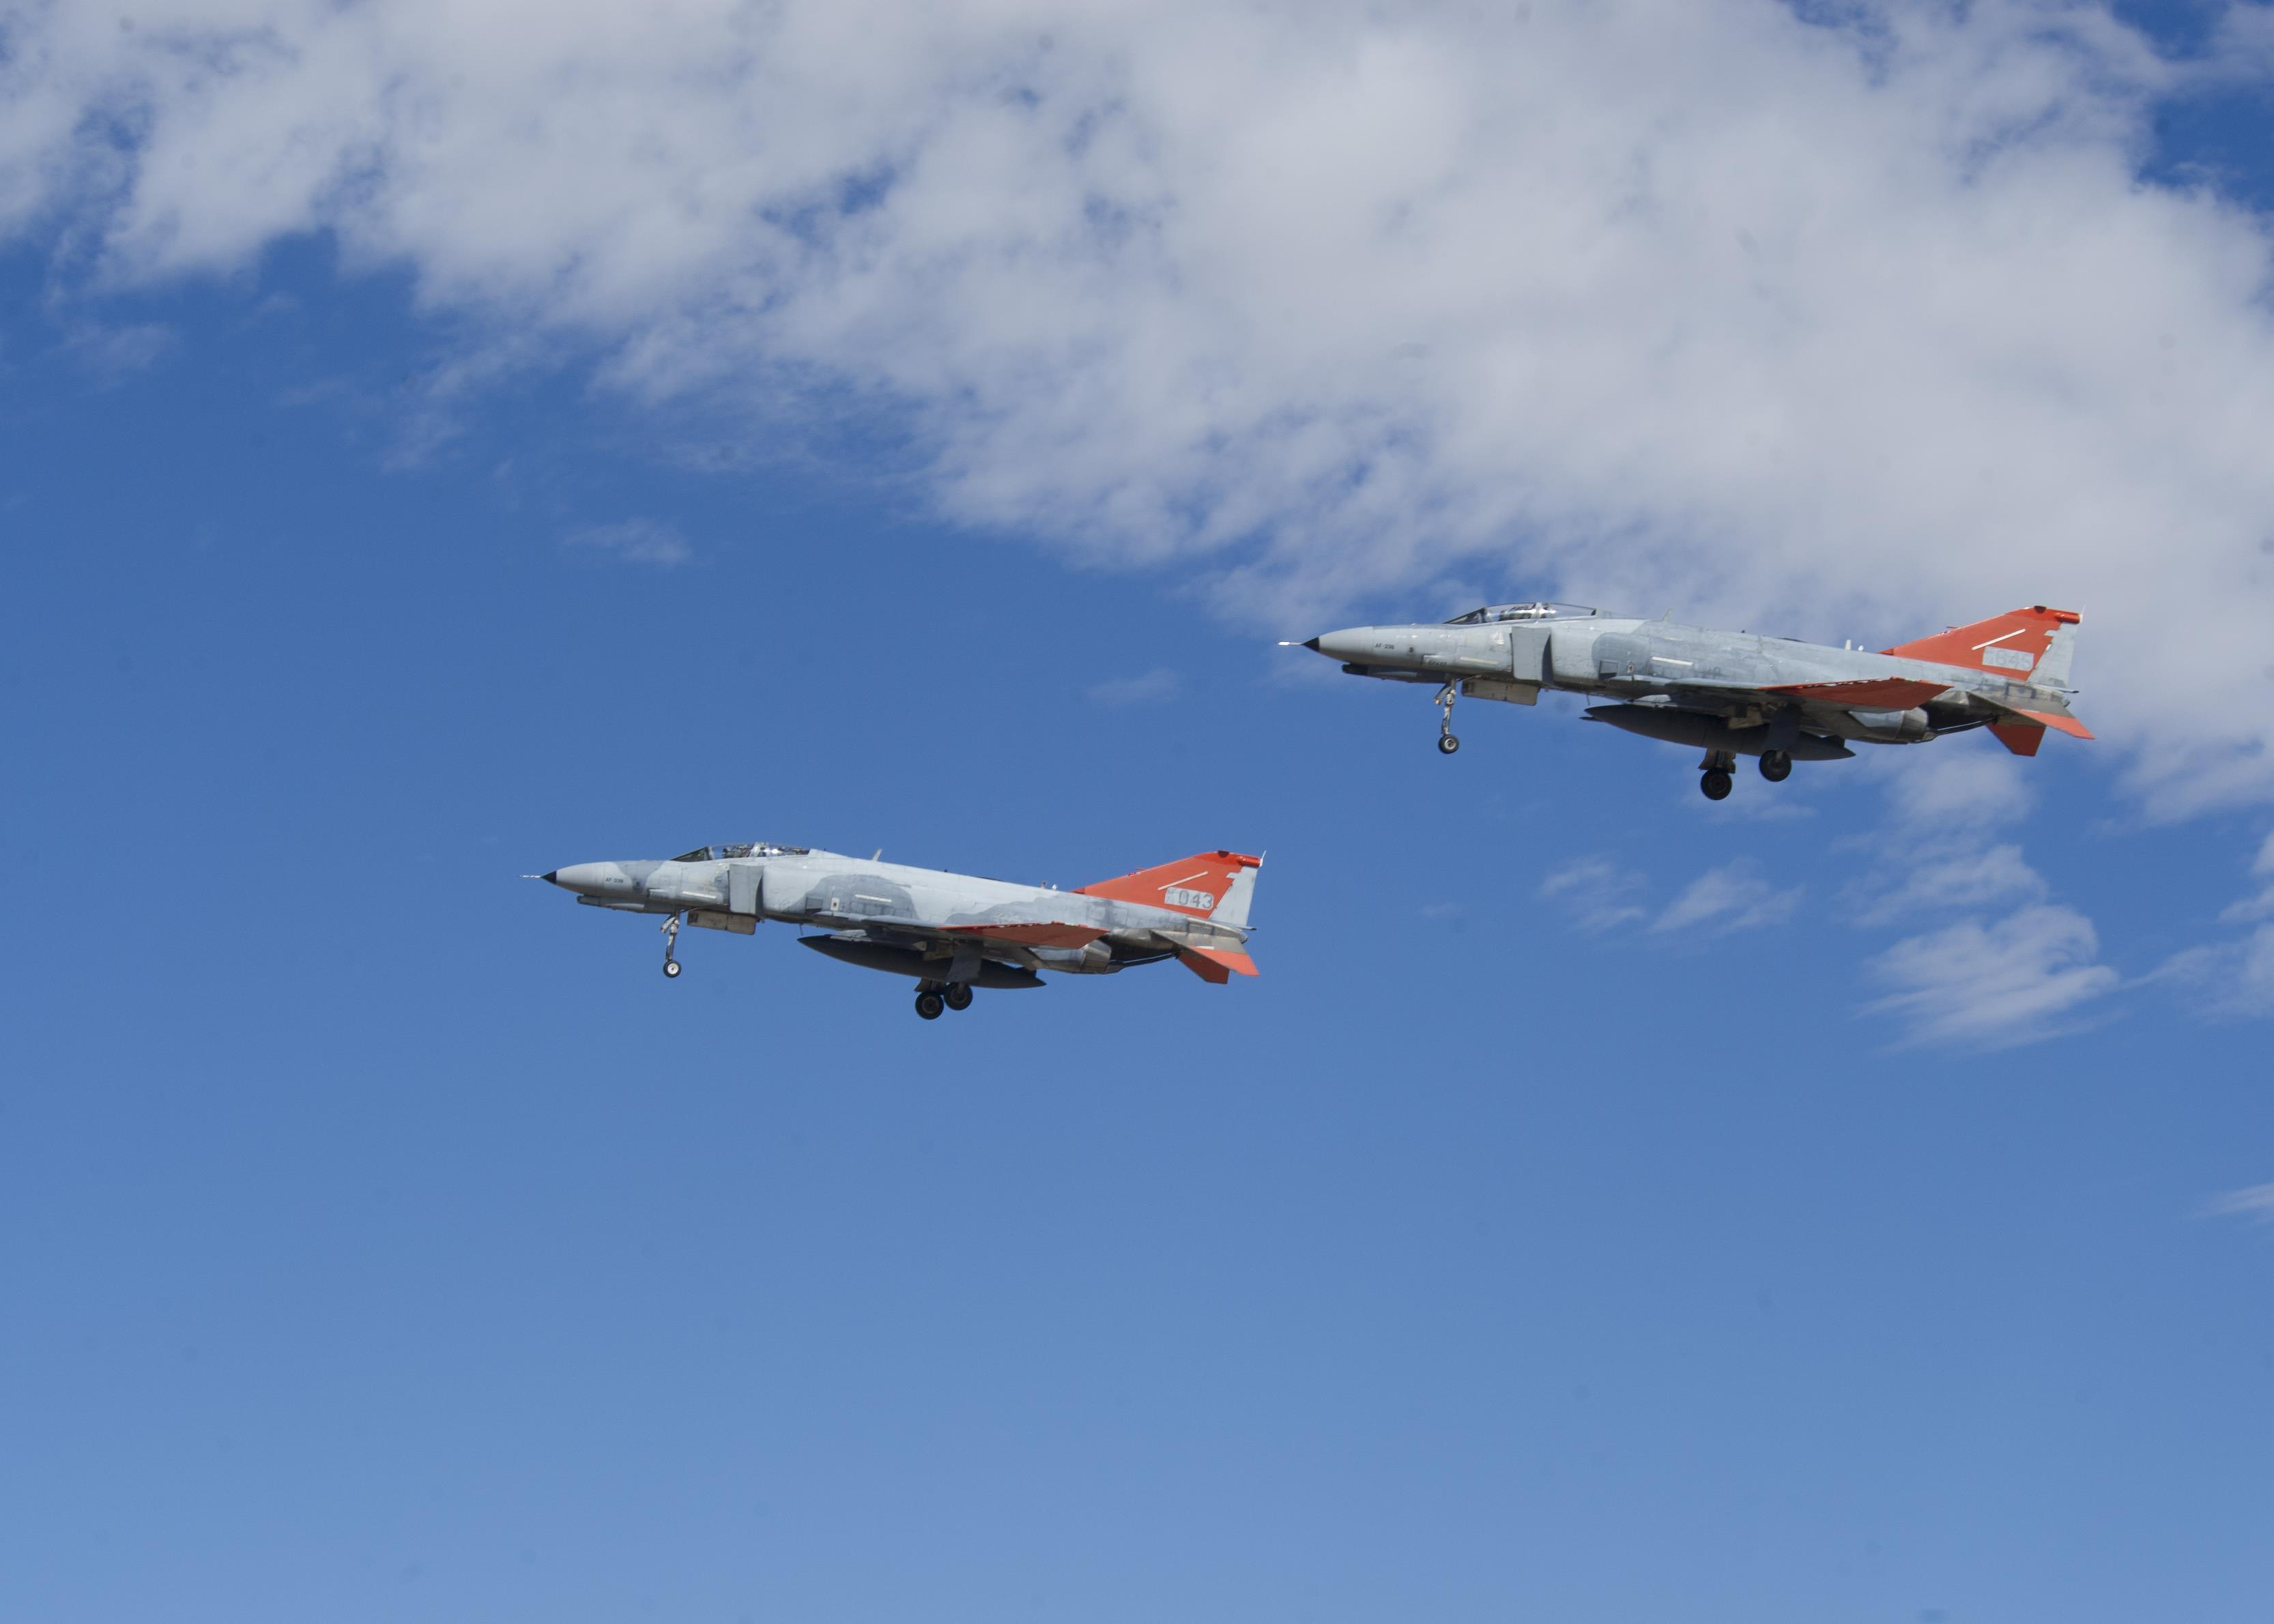 Two QF-4 Phantom IIs fly in formation over Holloman Air Force Base, N.M. on Sept. 13, 2016, in front of 160 spectators participating in Holloman's annual Phantom Society Tour. The tour enabled aircraft enthusiasts, including veterans and non-veterans with aviation backgrounds, to learn more about Holloman AFB's aircraft and mission. The tour included an F-16 Fighting Falcon static display and briefing, travel to Holloman's High Speed Test Track, the opportunity to view QF-4 Phantom IIs and F-16s in flight, and a visit to the base's heritage park to view static displays of various aircraft historically stationed at Holloman AFB. (U.S. Air Force photo by Master Sgt. Matthew McGovern)